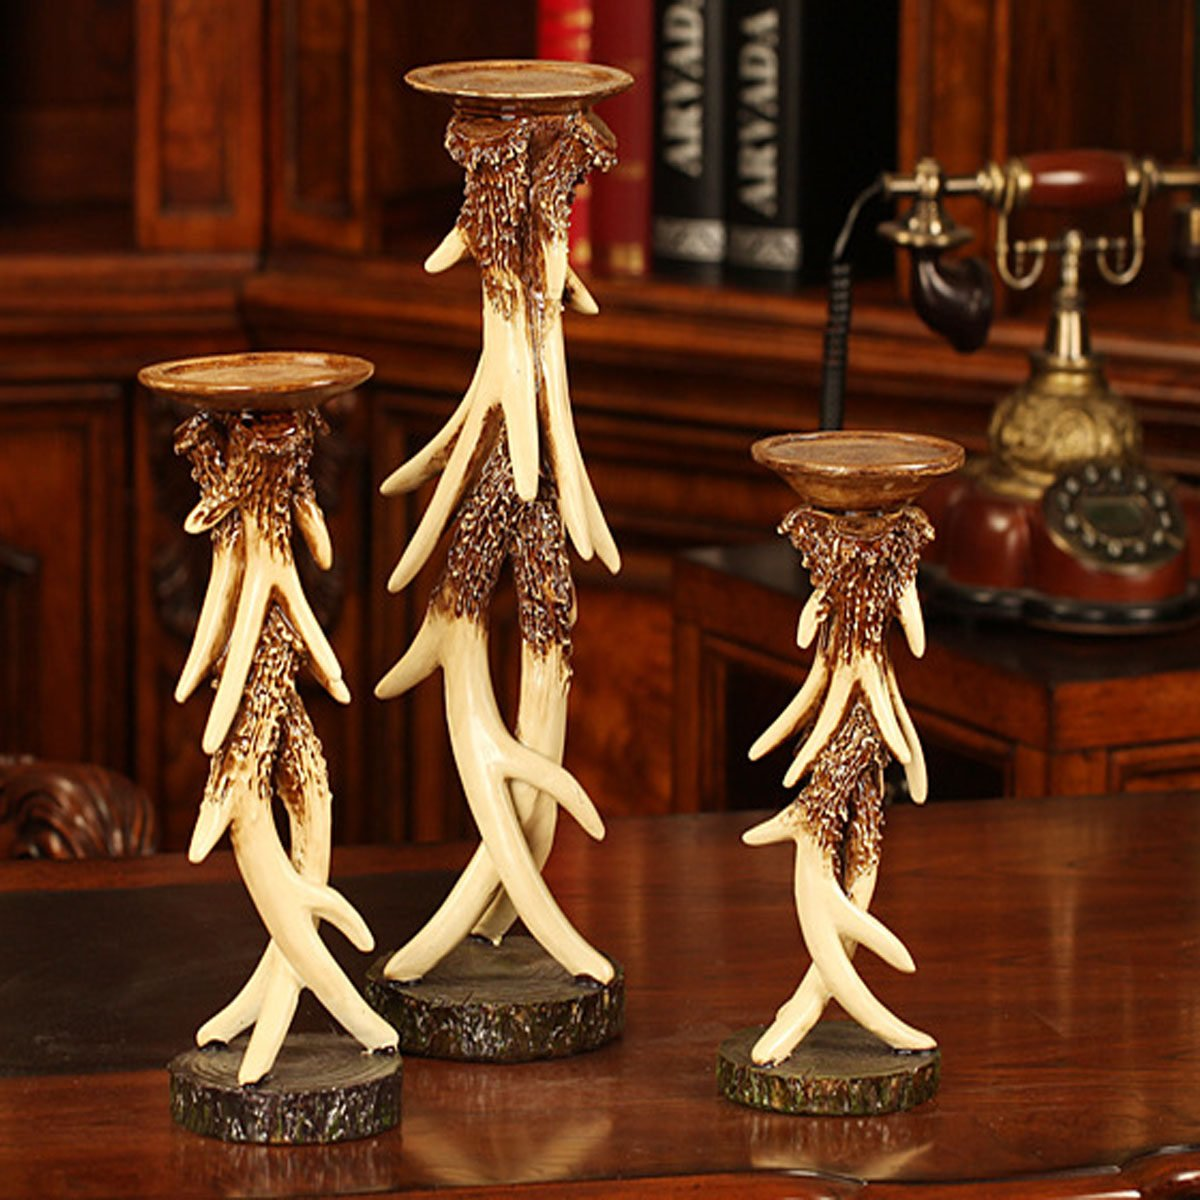 Elegant Vintage Resin Antlers Candlestick Carving Fine Crafts Pattern Wedding Decor Candle Holder Art Sculpture Three-piece Set by DEAI (Image #6)